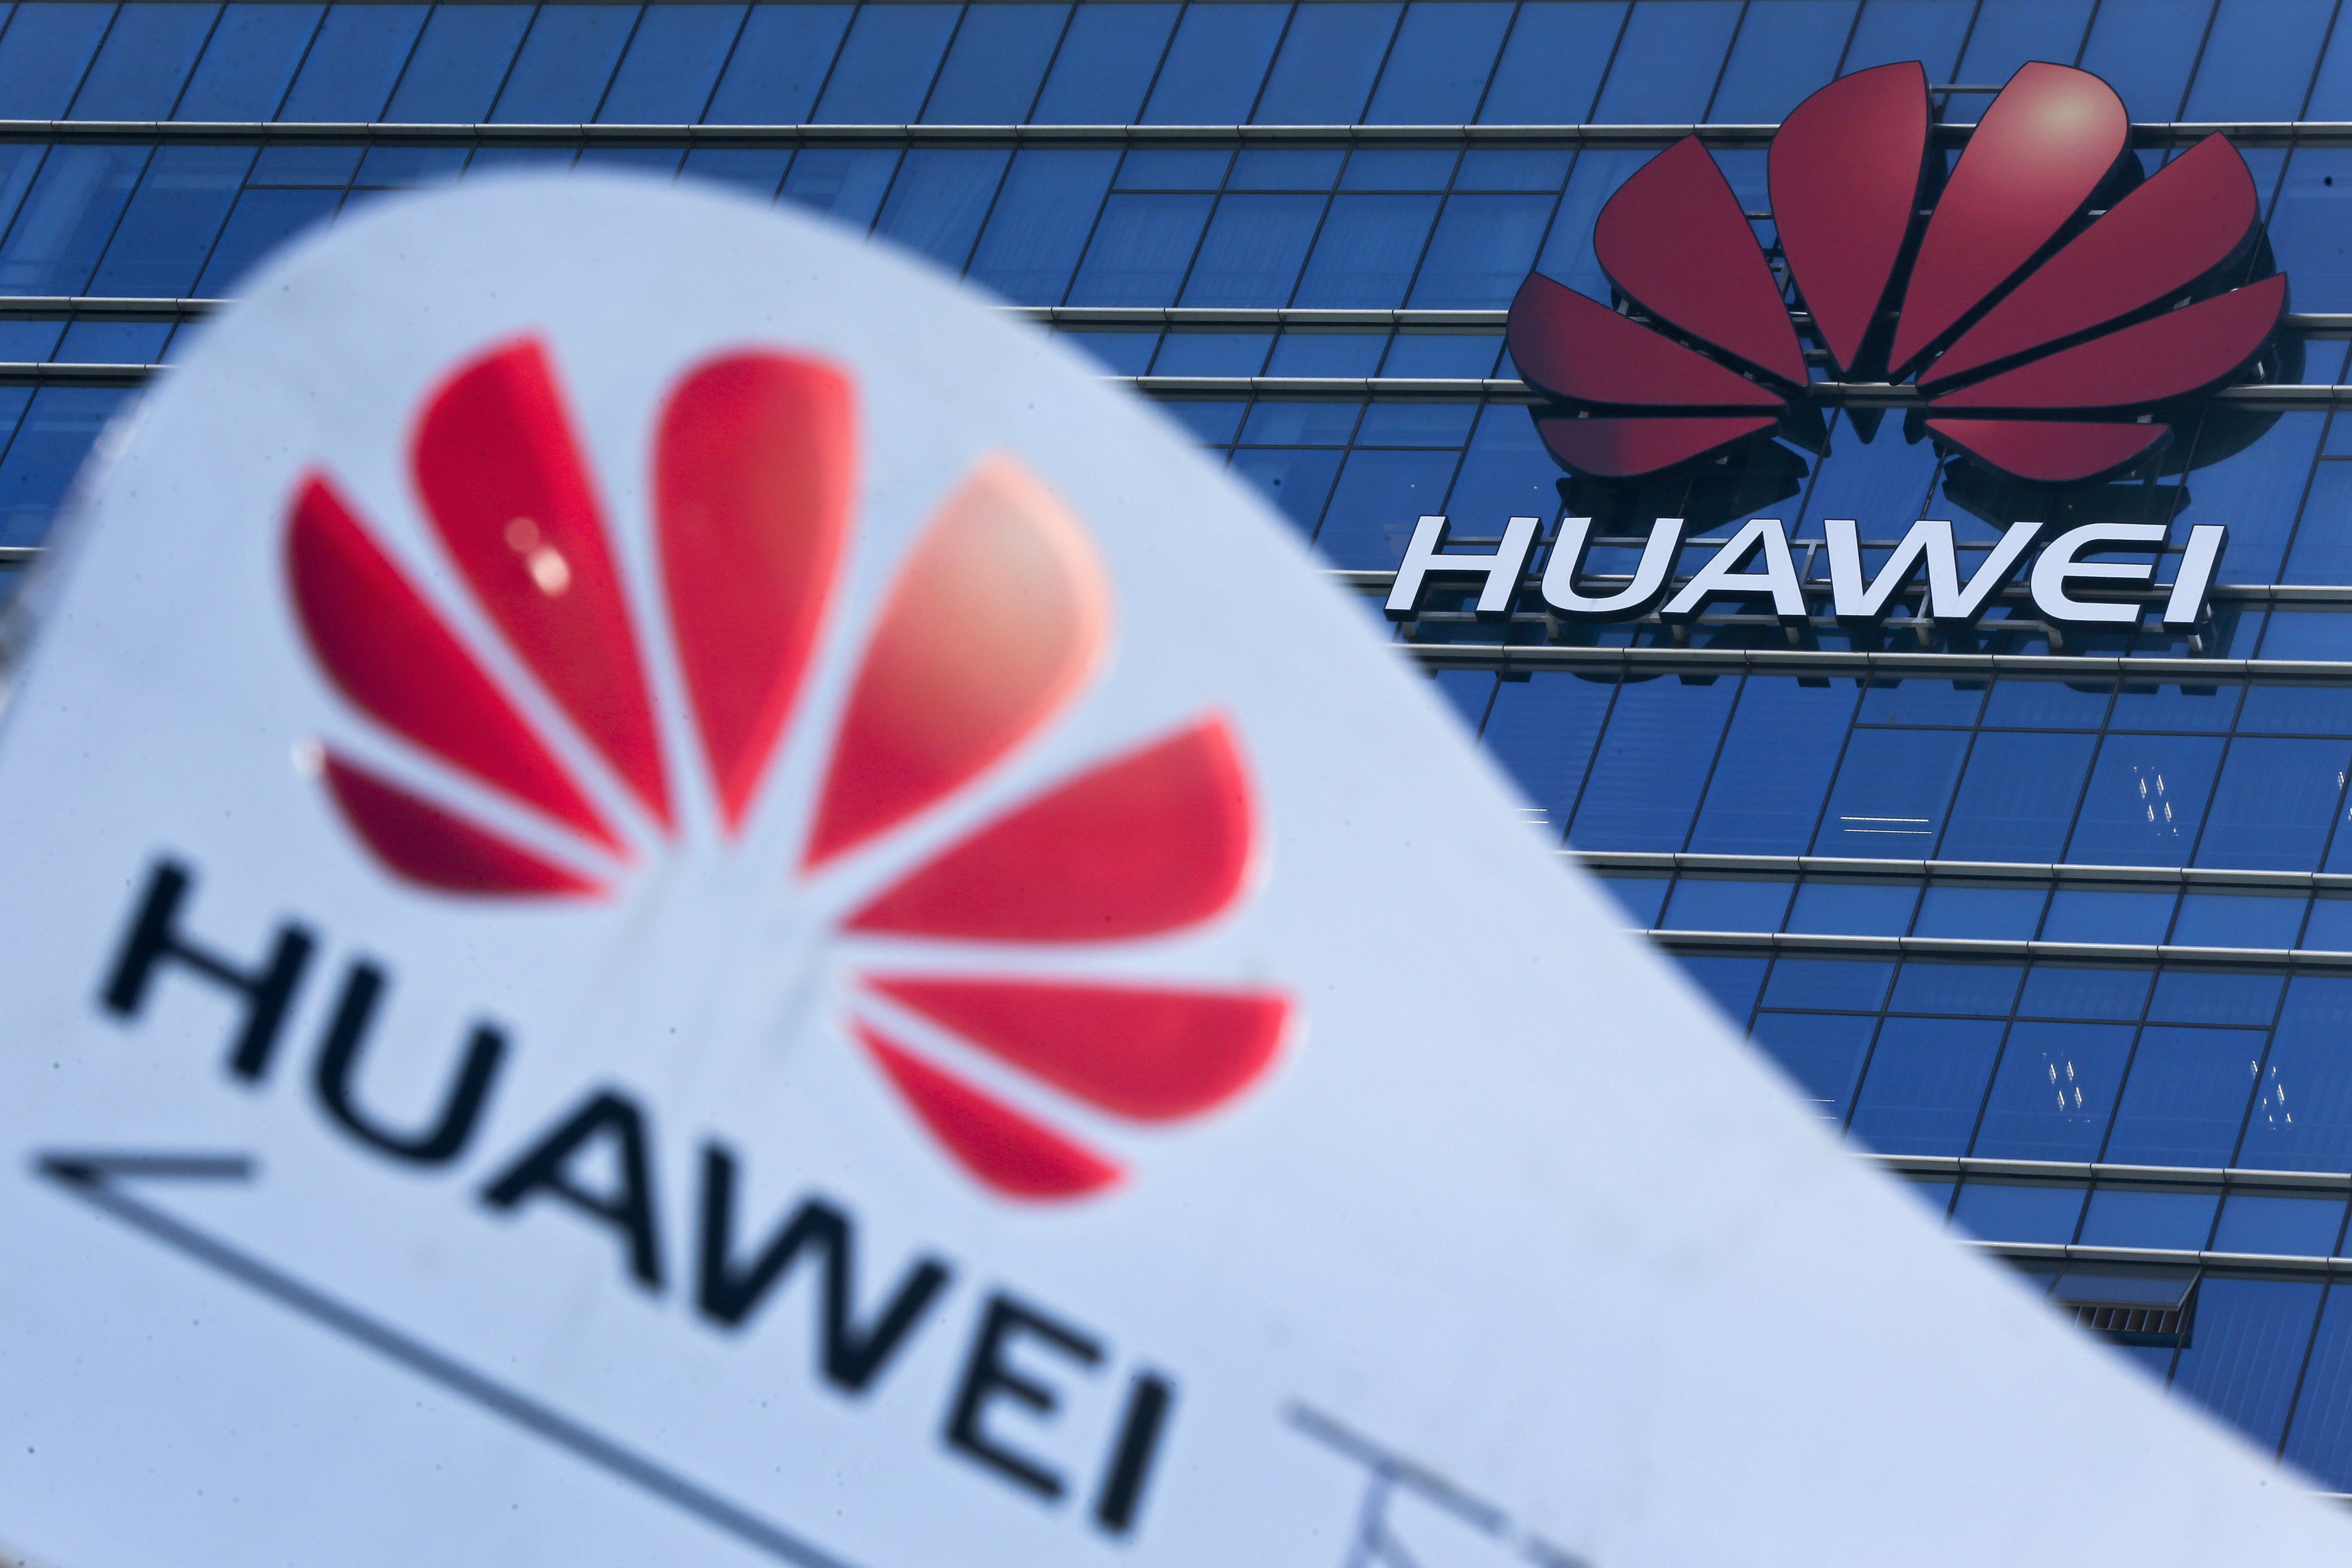 Huawei accuses US agents of hacking into its servers as it launches